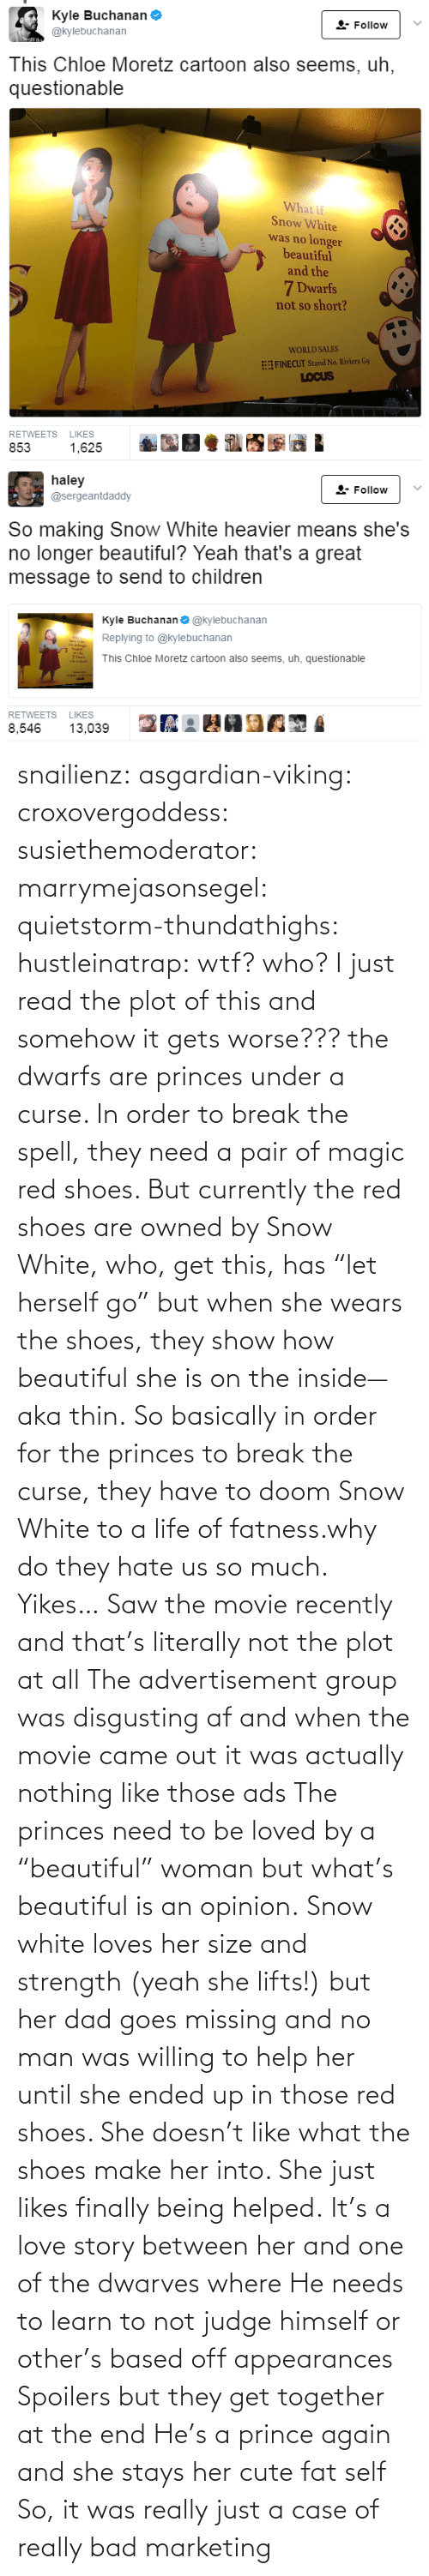 "WTF: snailienz: asgardian-viking:  croxovergoddess:  susiethemoderator:  marrymejasonsegel:   quietstorm-thundathighs:  hustleinatrap: wtf?  who?   I just read the plot of this and somehow it gets worse??? the dwarfs are princes under a curse. In order to break the spell, they need a pair of magic red shoes. But currently the red shoes are owned by Snow White, who, get this, has ""let herself go"" but when she wears the shoes, they show how beautiful she is on the inside—aka thin. So basically in order for the princes to break the curse, they have to doom Snow White to a life of fatness.why do they hate us so much.   Yikes…    Saw the movie recently and that's literally not the plot at all The advertisement group was disgusting af and when the movie came out it was actually nothing like those ads The princes need to be loved by a ""beautiful"" woman but what's beautiful is an opinion. Snow white loves her size and strength (yeah she lifts!) but her dad goes missing and no man was willing to help her until she ended up in those red shoes. She doesn't like what the shoes make her into. She just likes finally being helped. It's a love story between her and one of the dwarves where He needs to learn to not judge himself or other's based off appearances  Spoilers but they get together at the end He's a prince again and she stays her cute fat self  So, it was really just a case of really bad marketing"